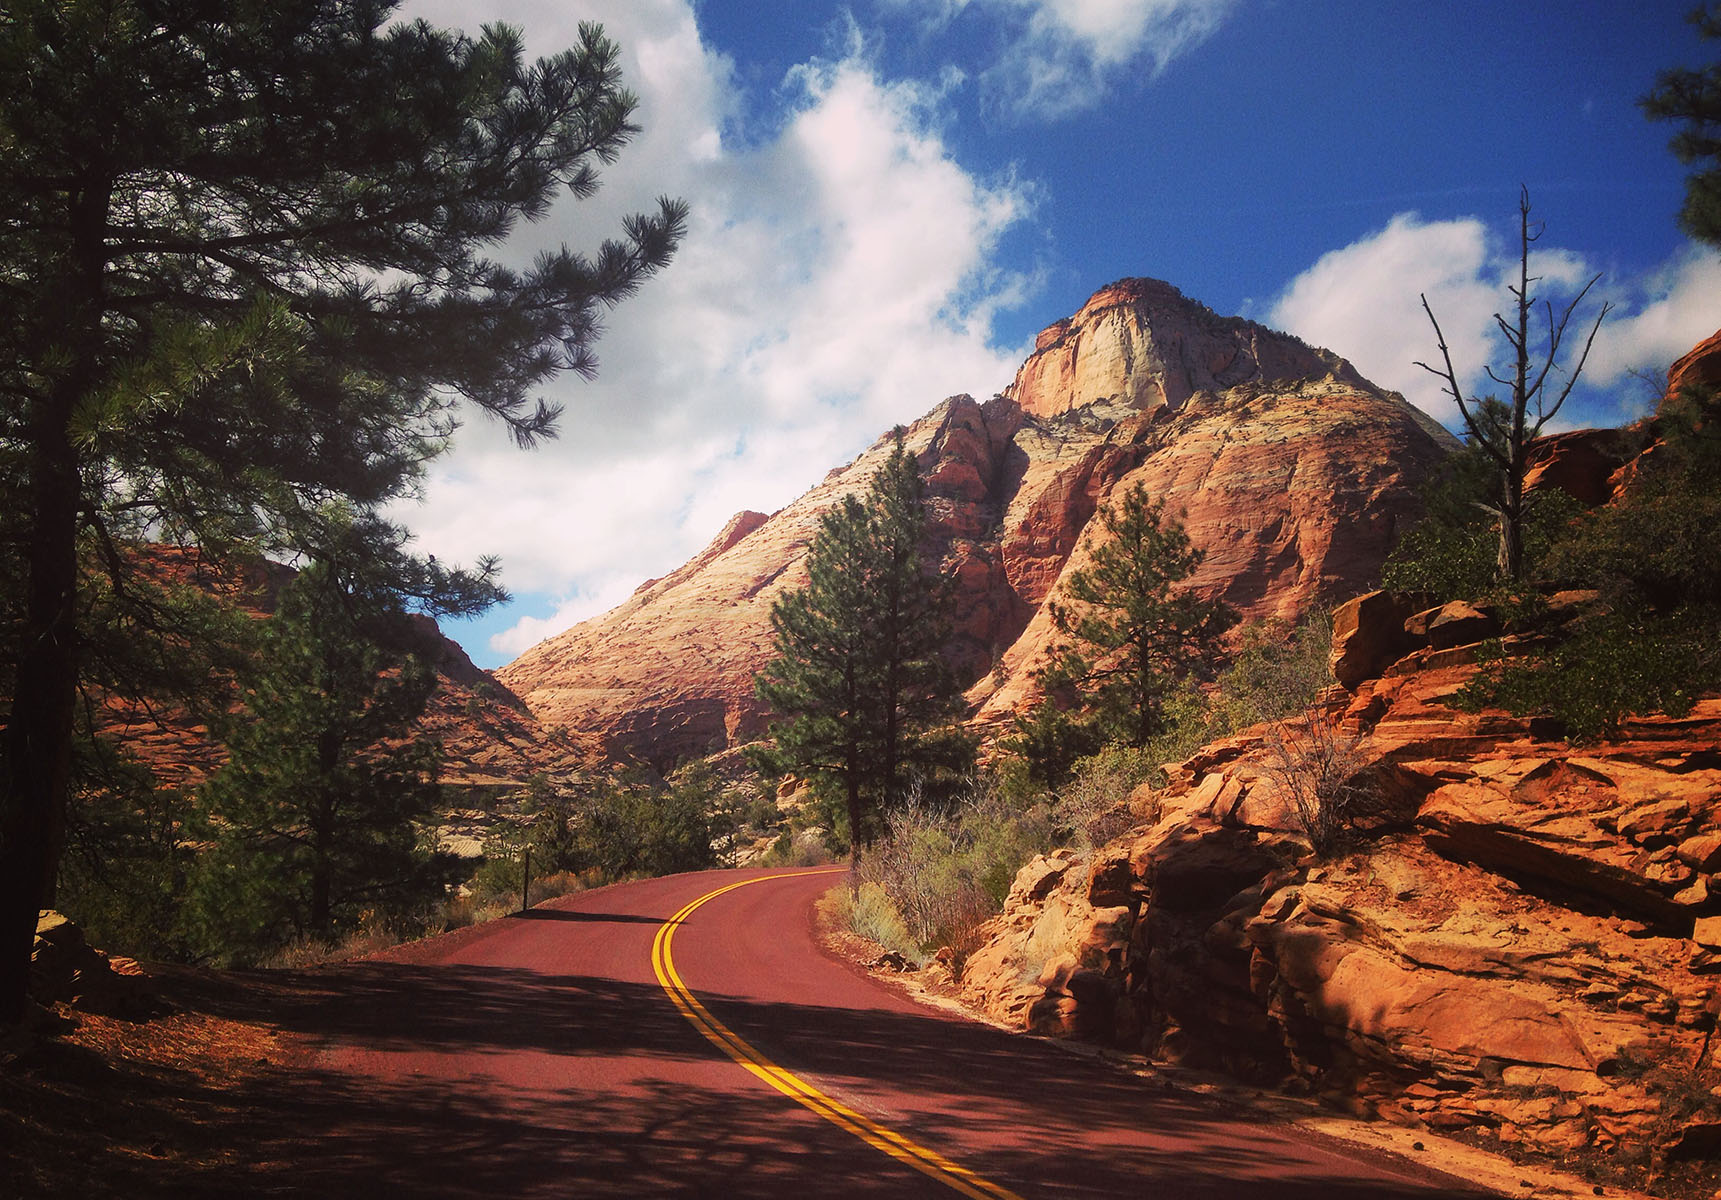 Zion national park utah road trip usa